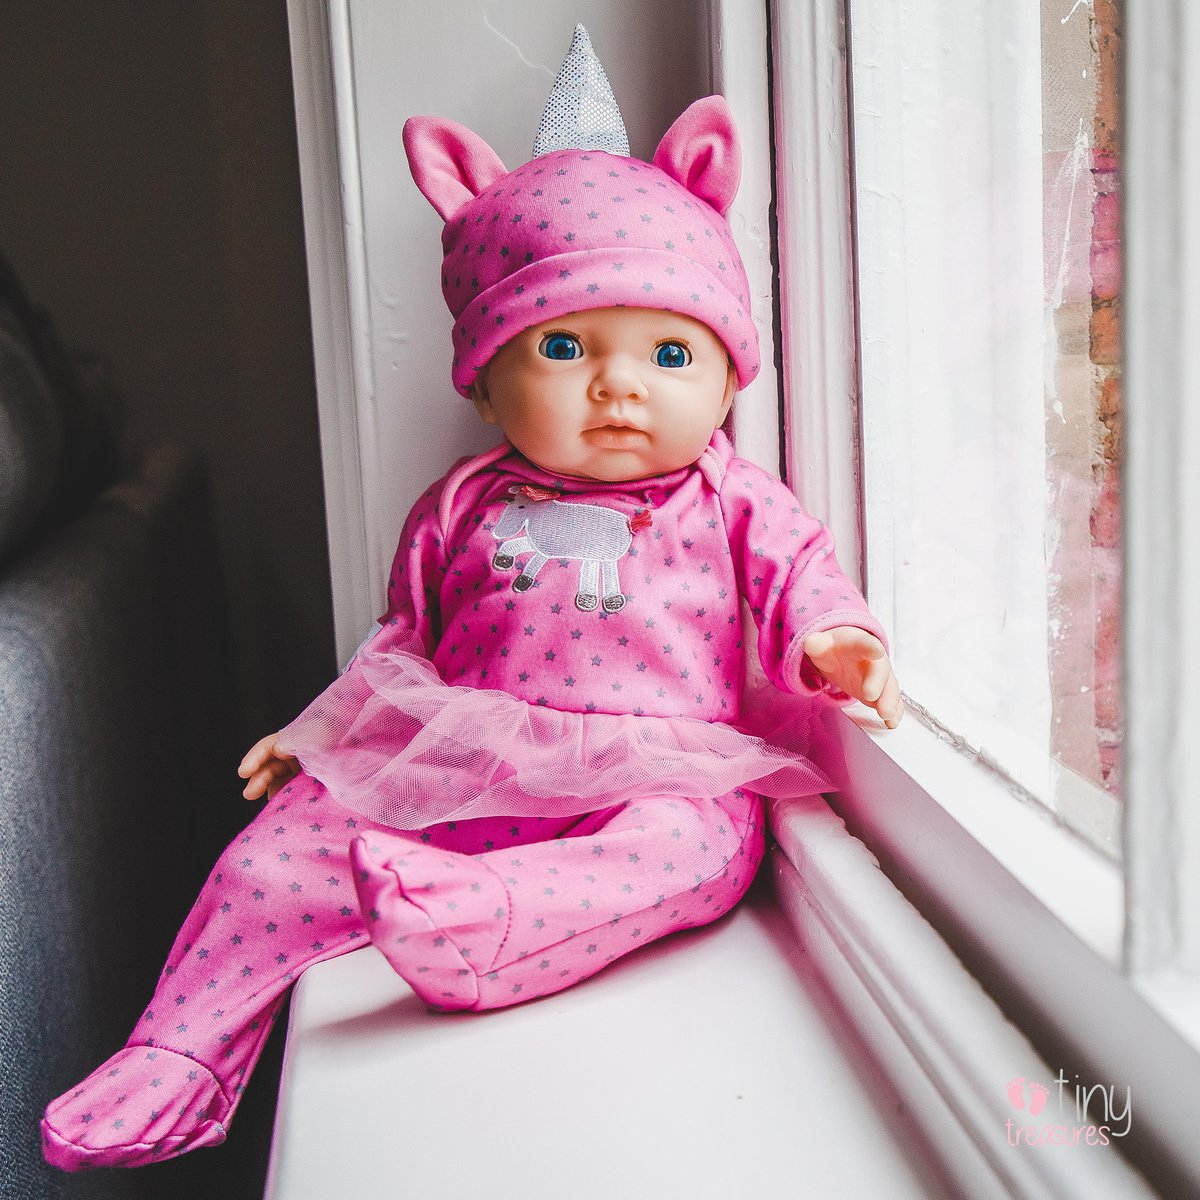 The cutest unicorn ever  Find the unicorn outfit at http://Argos.co.uk today! . . #tinytreasures #unicorn #baby #babyoutfit #babydoll #dolls #dollstagram #toys #toy #argos #likearealbaby #uktoys #mums #newbornpic.twitter.com/1wW5tdKOHy